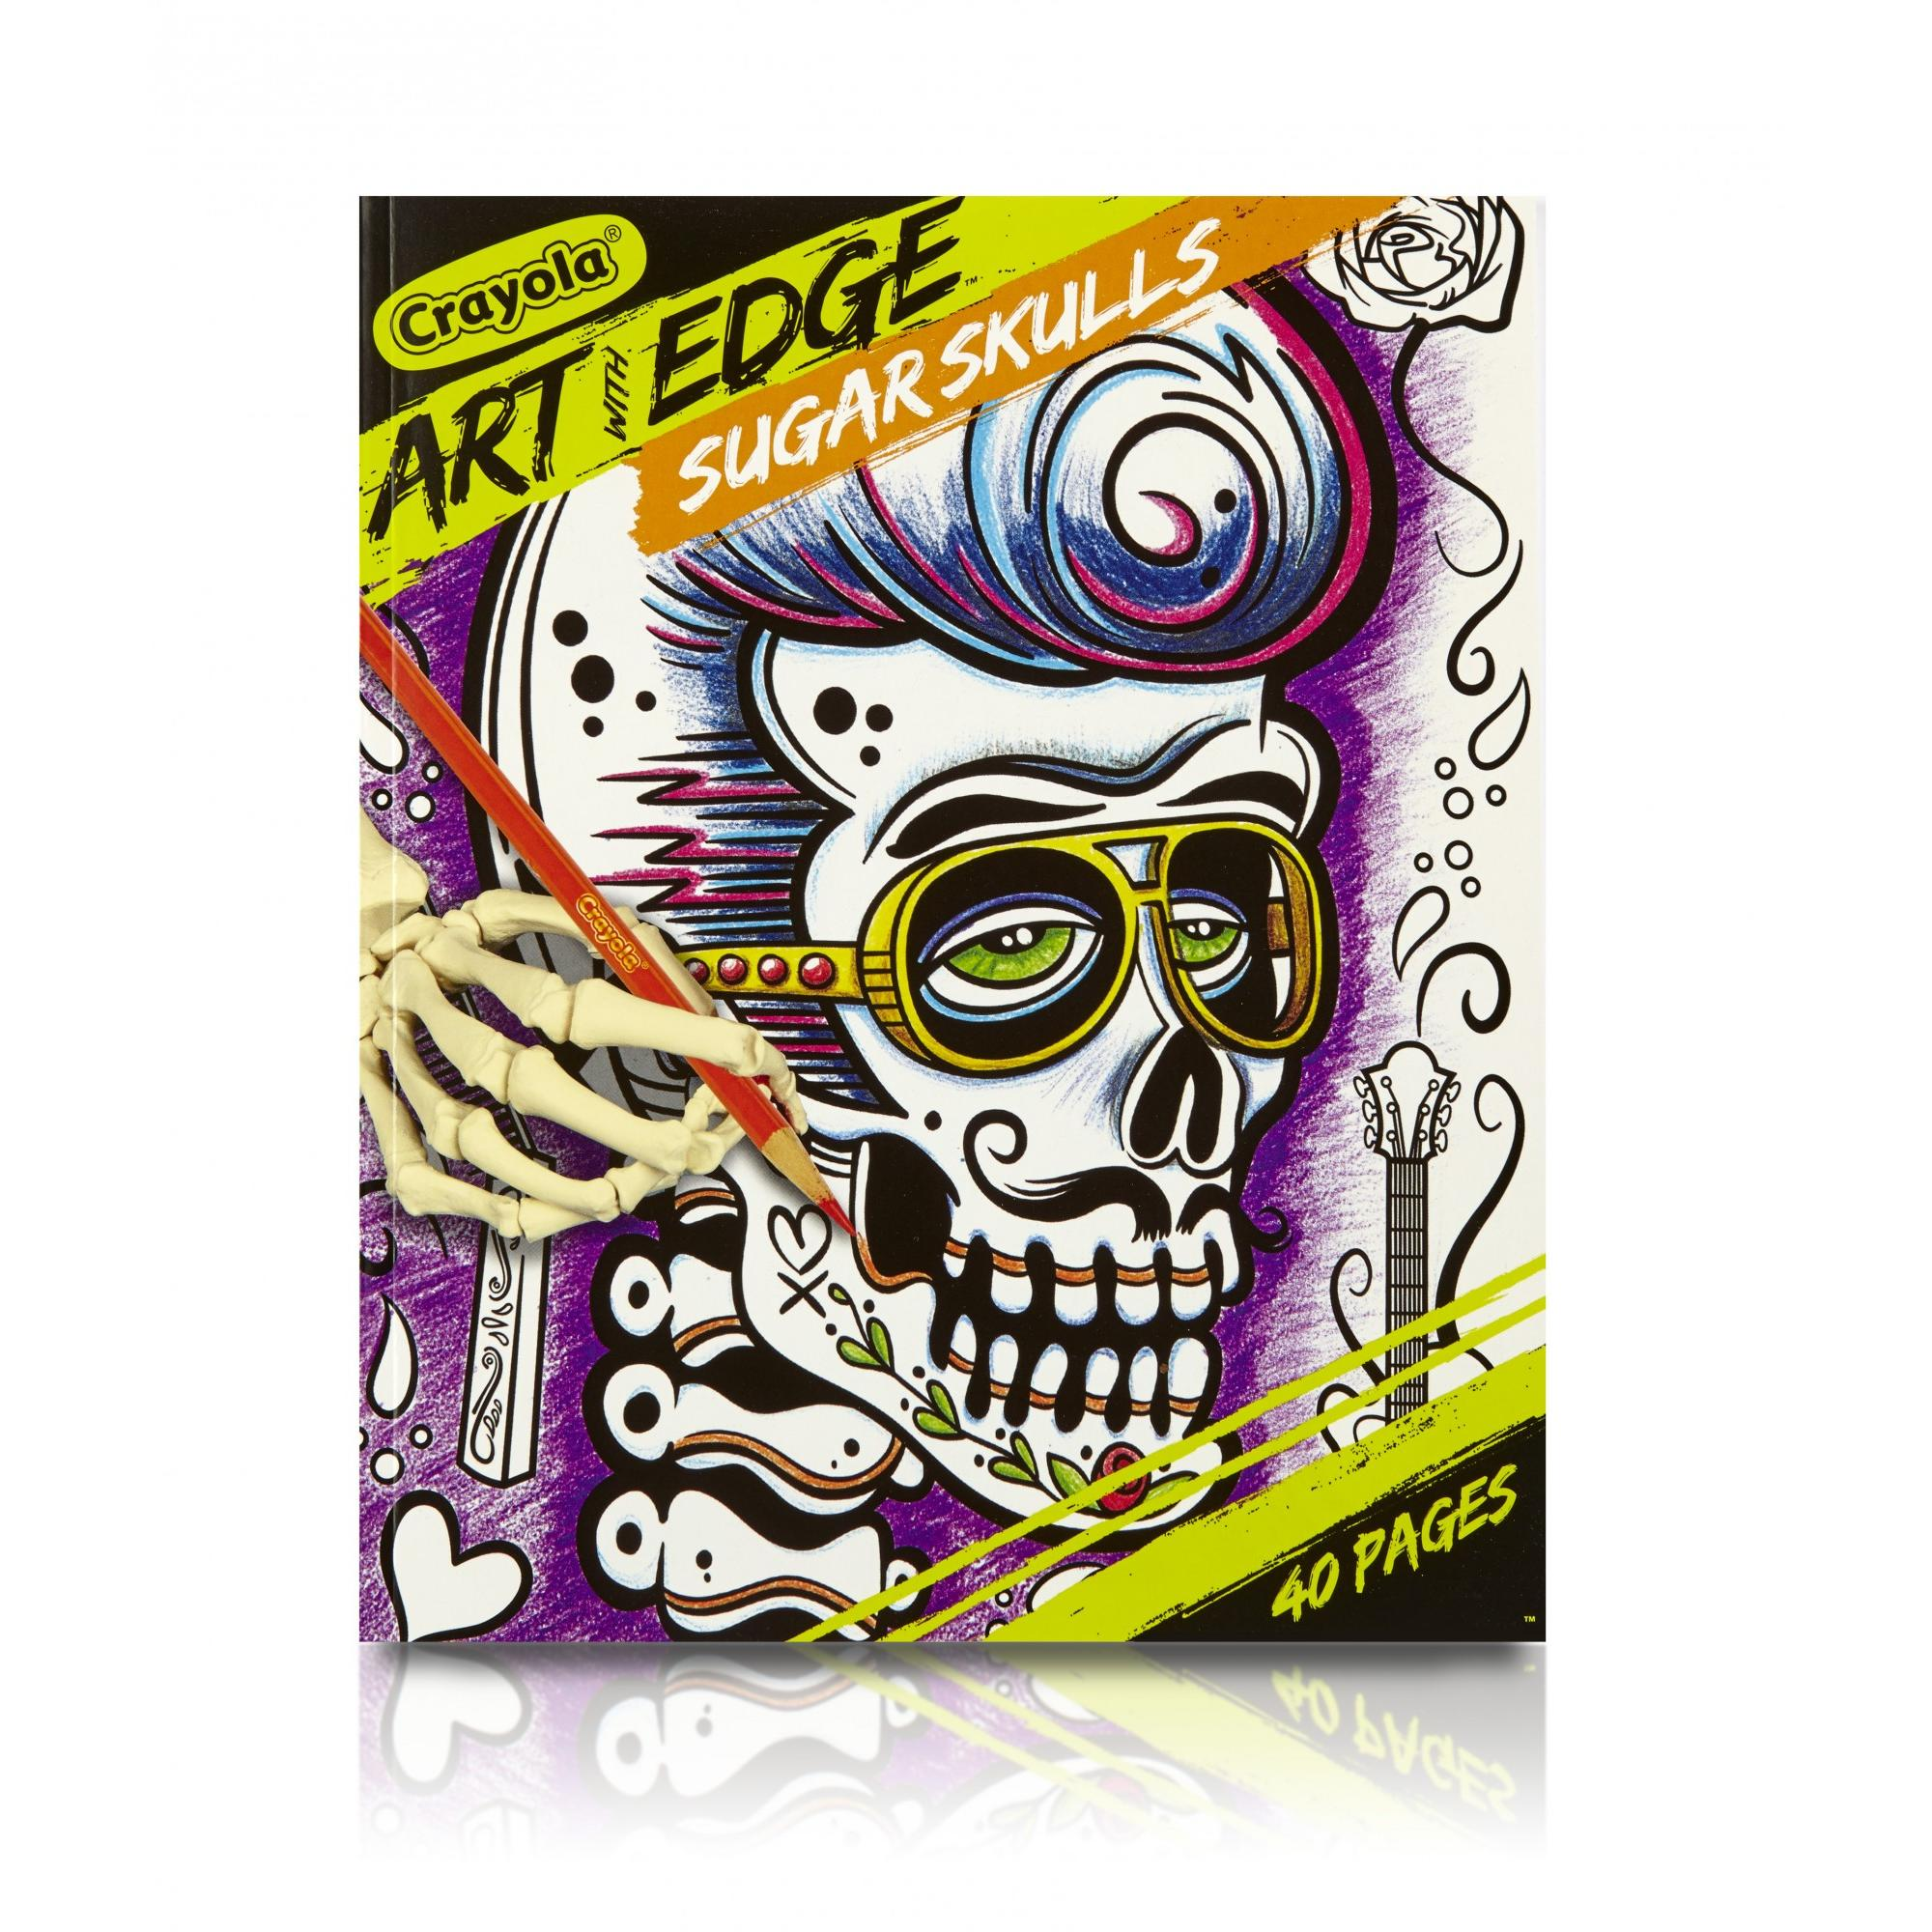 Crayola Sugar Skulls Coloring Book, Teen Coloring, 40 Pages ...